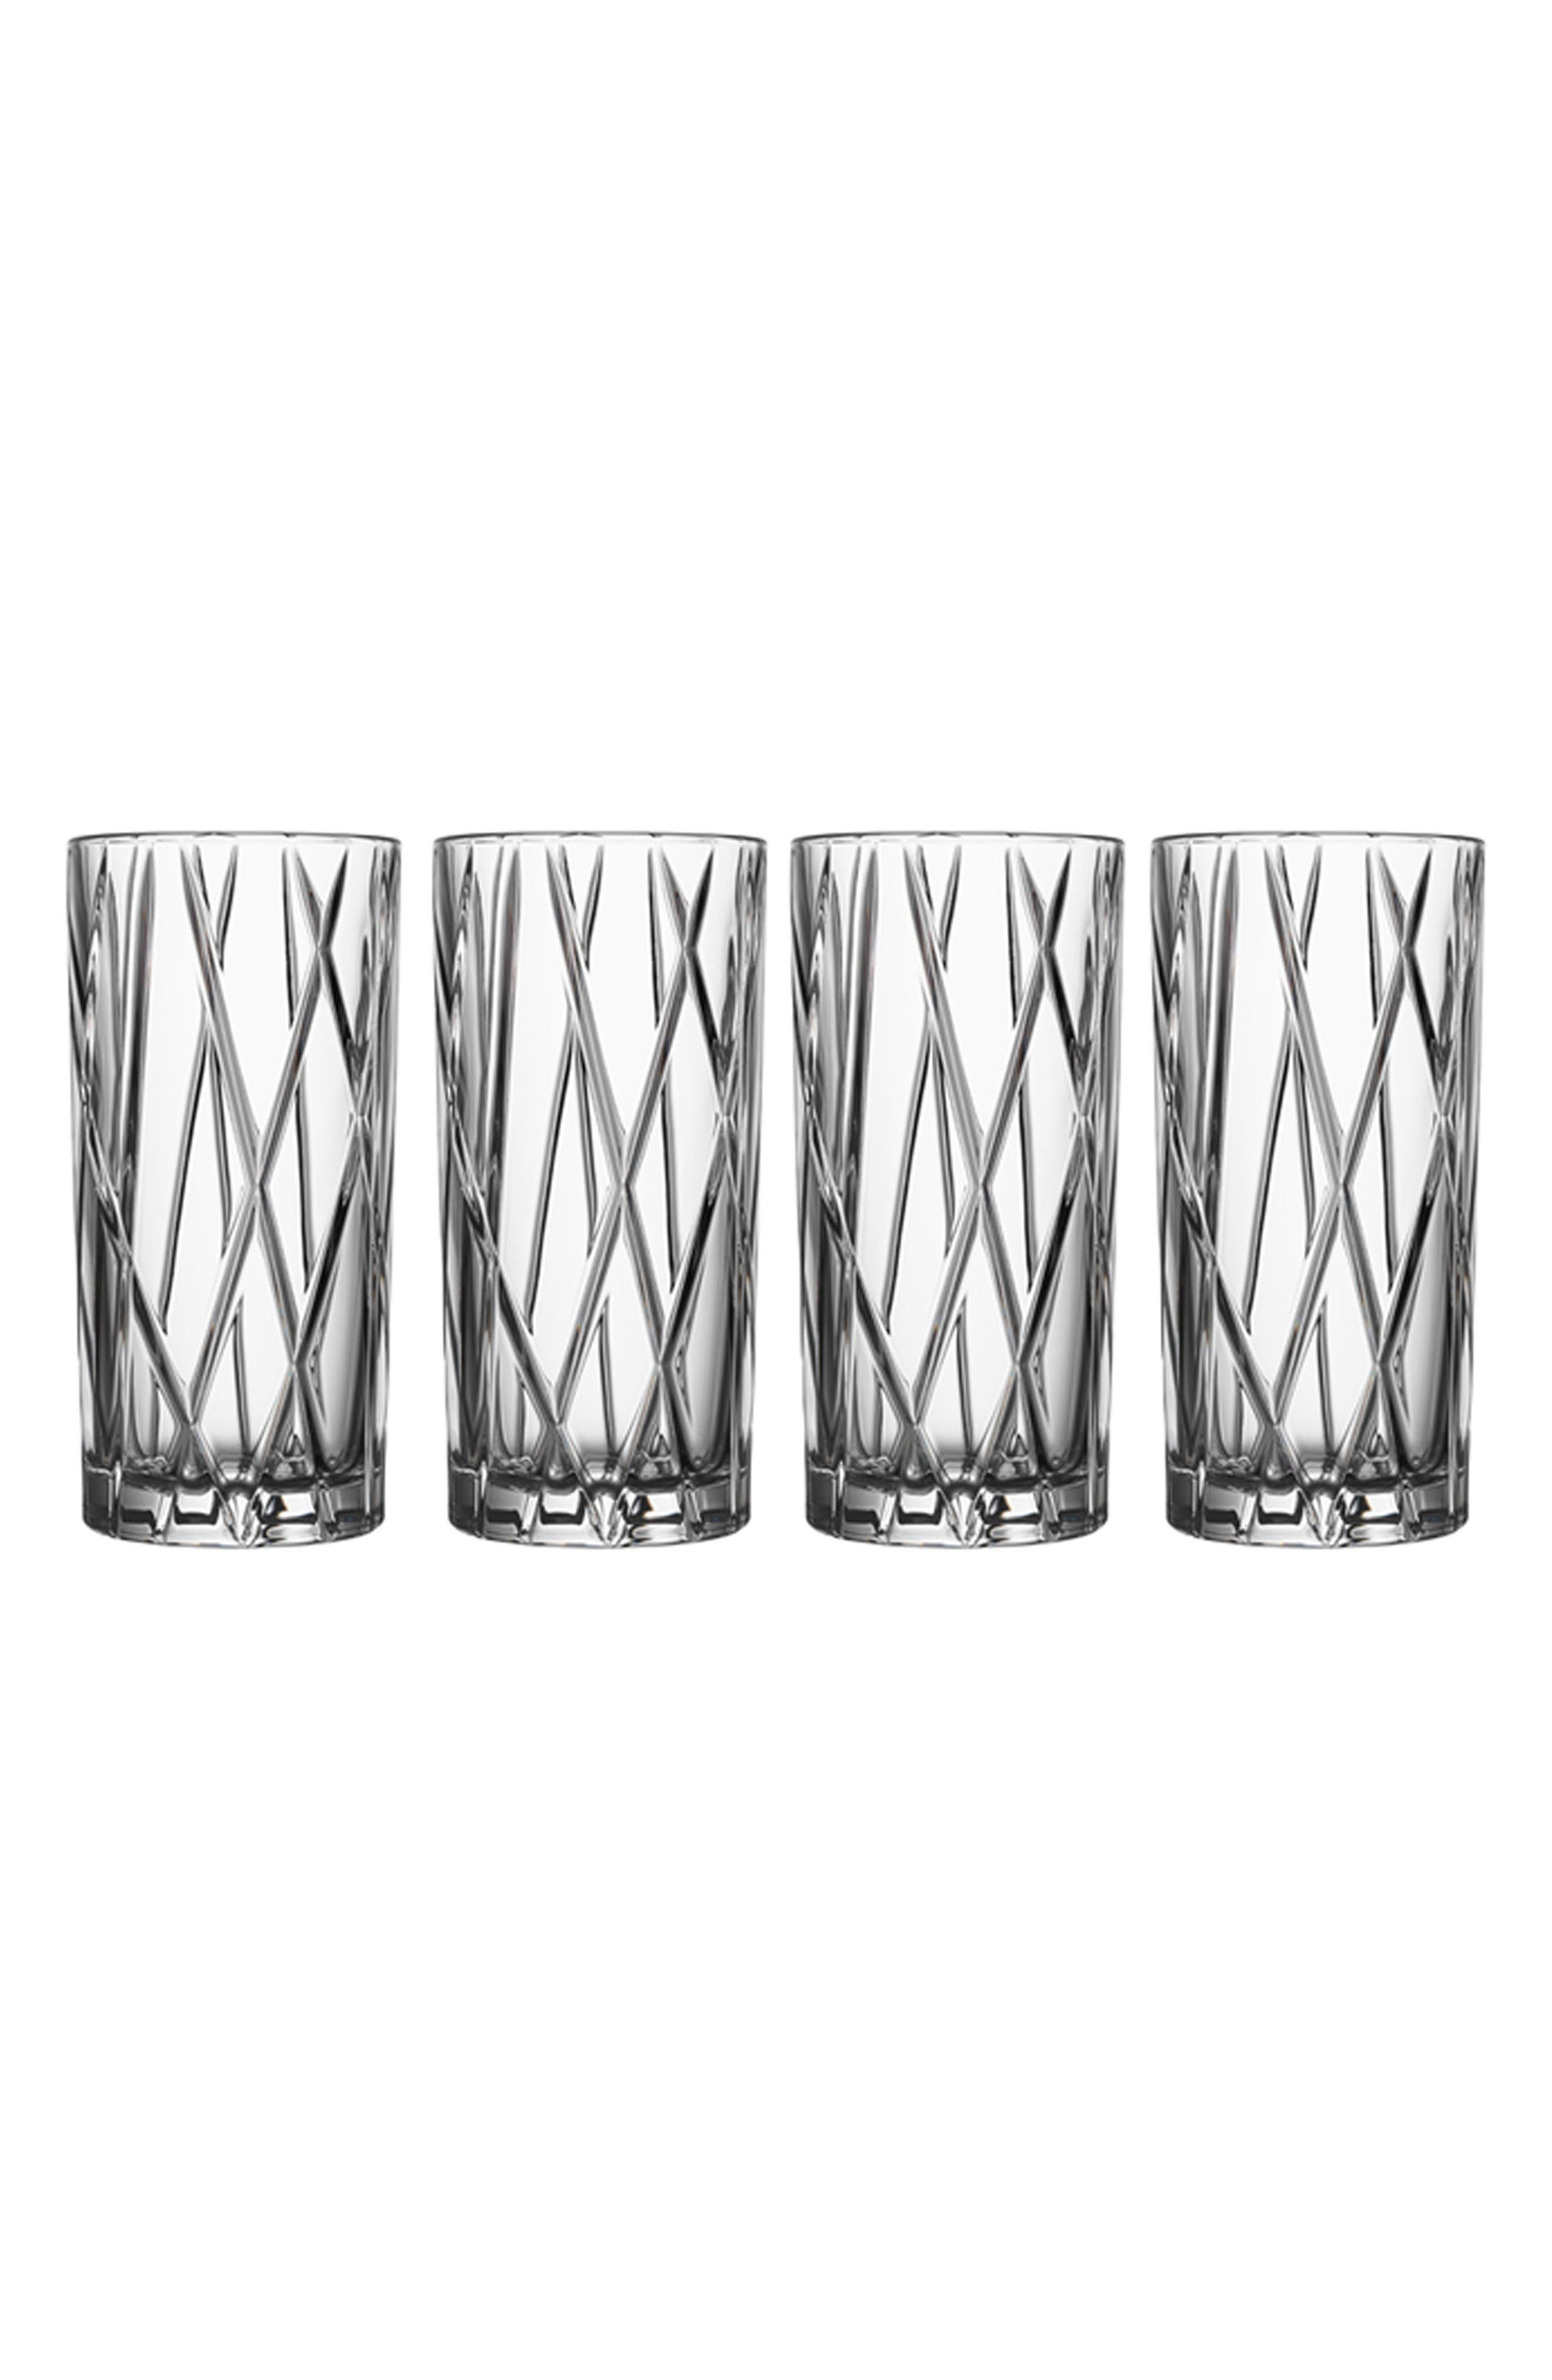 City Set of 4 Crystal Highball Glasses,                         Main,                         color, Clear